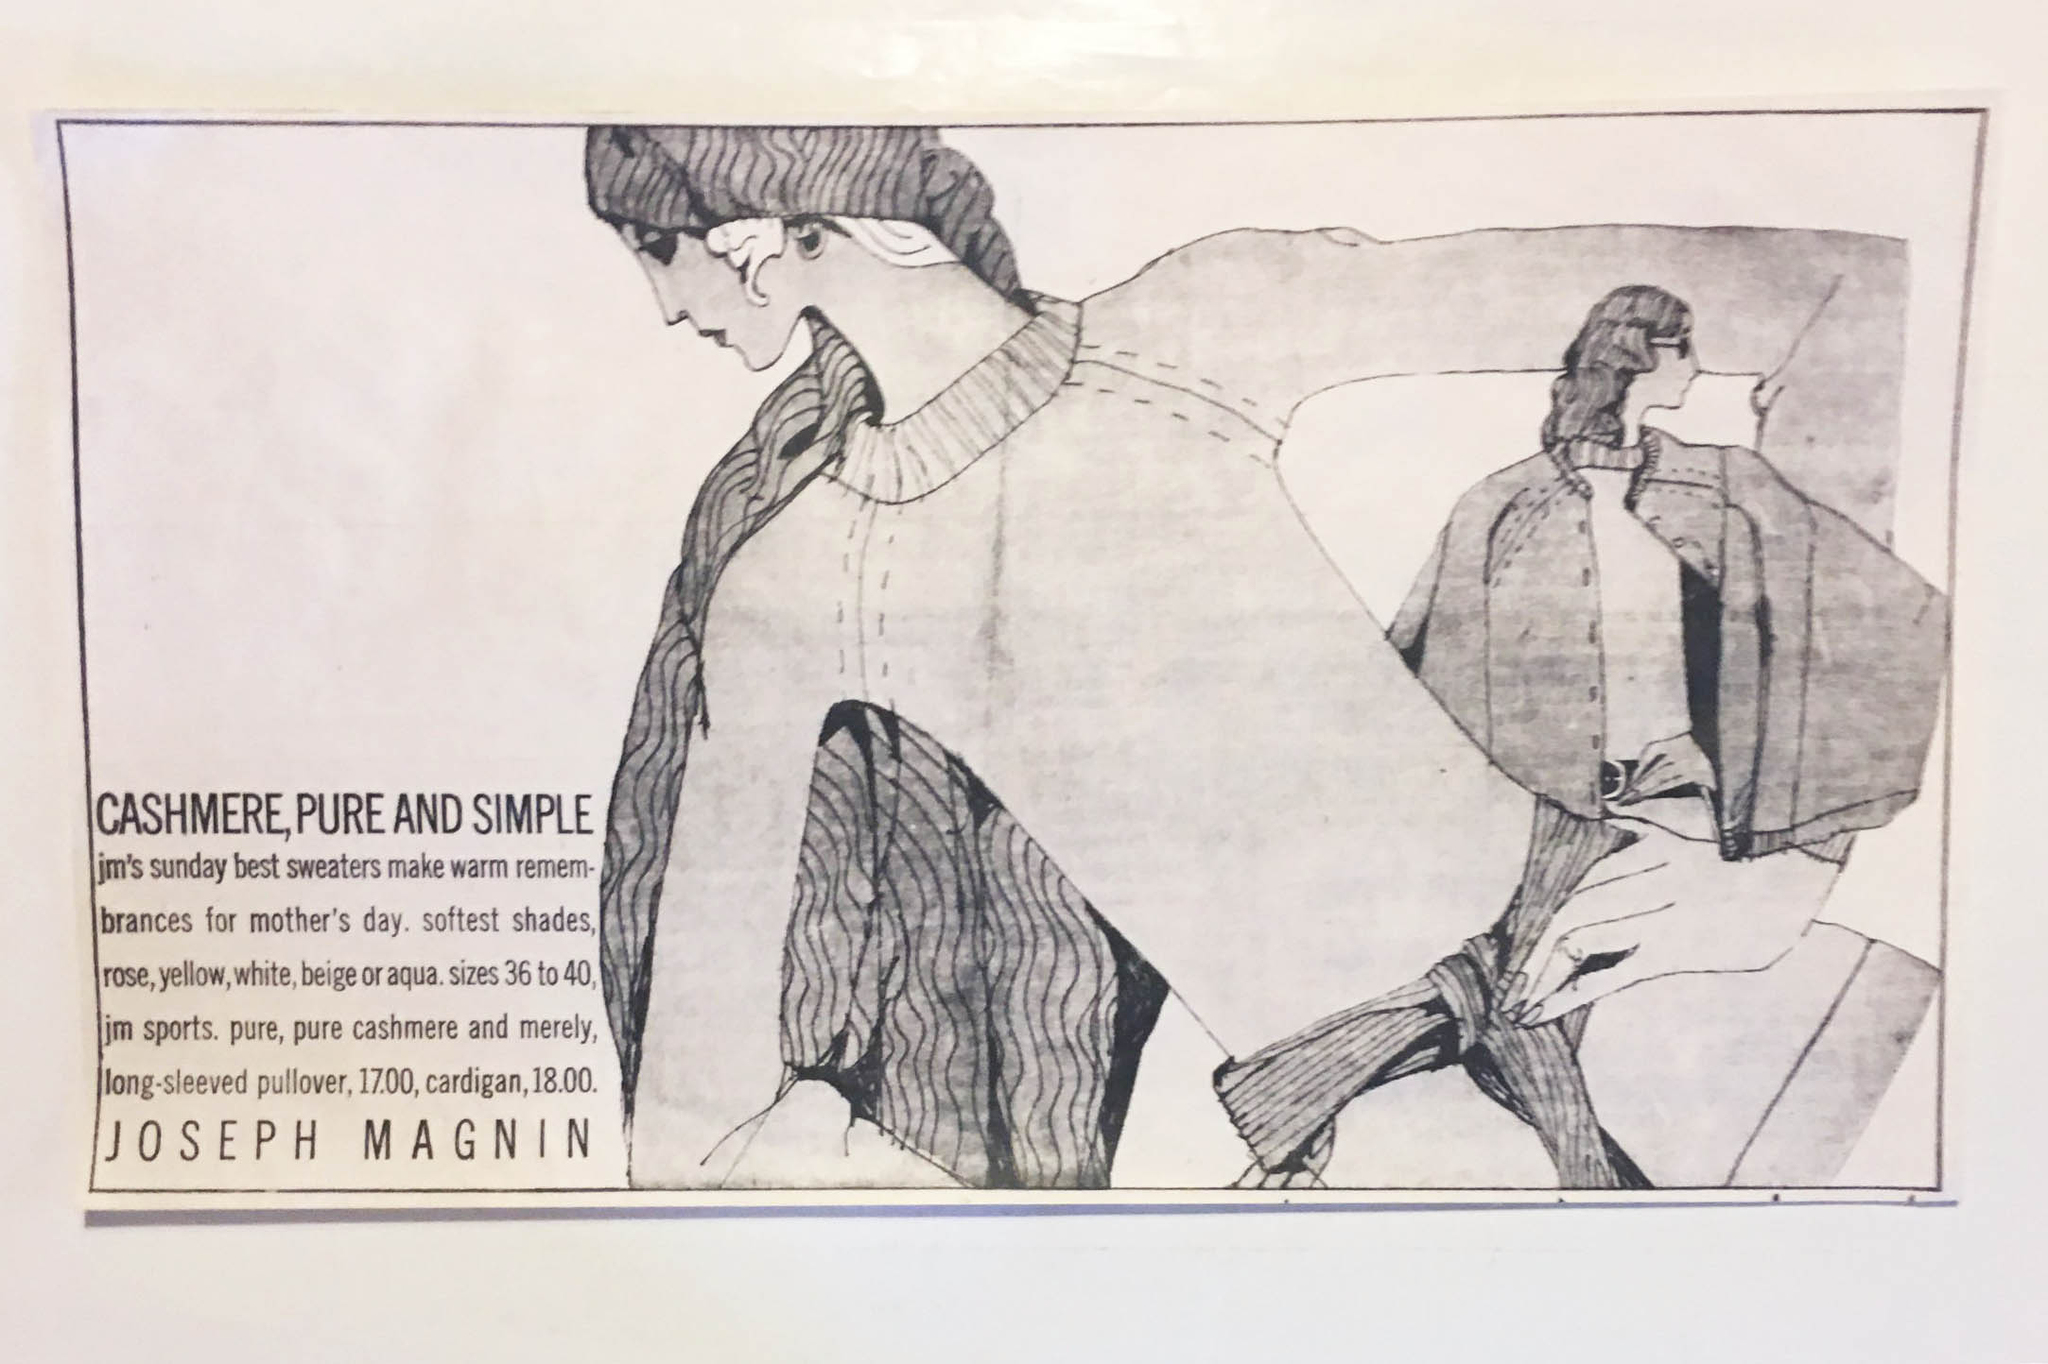 A Joseph Magnin ad by Richard Rosenfield.